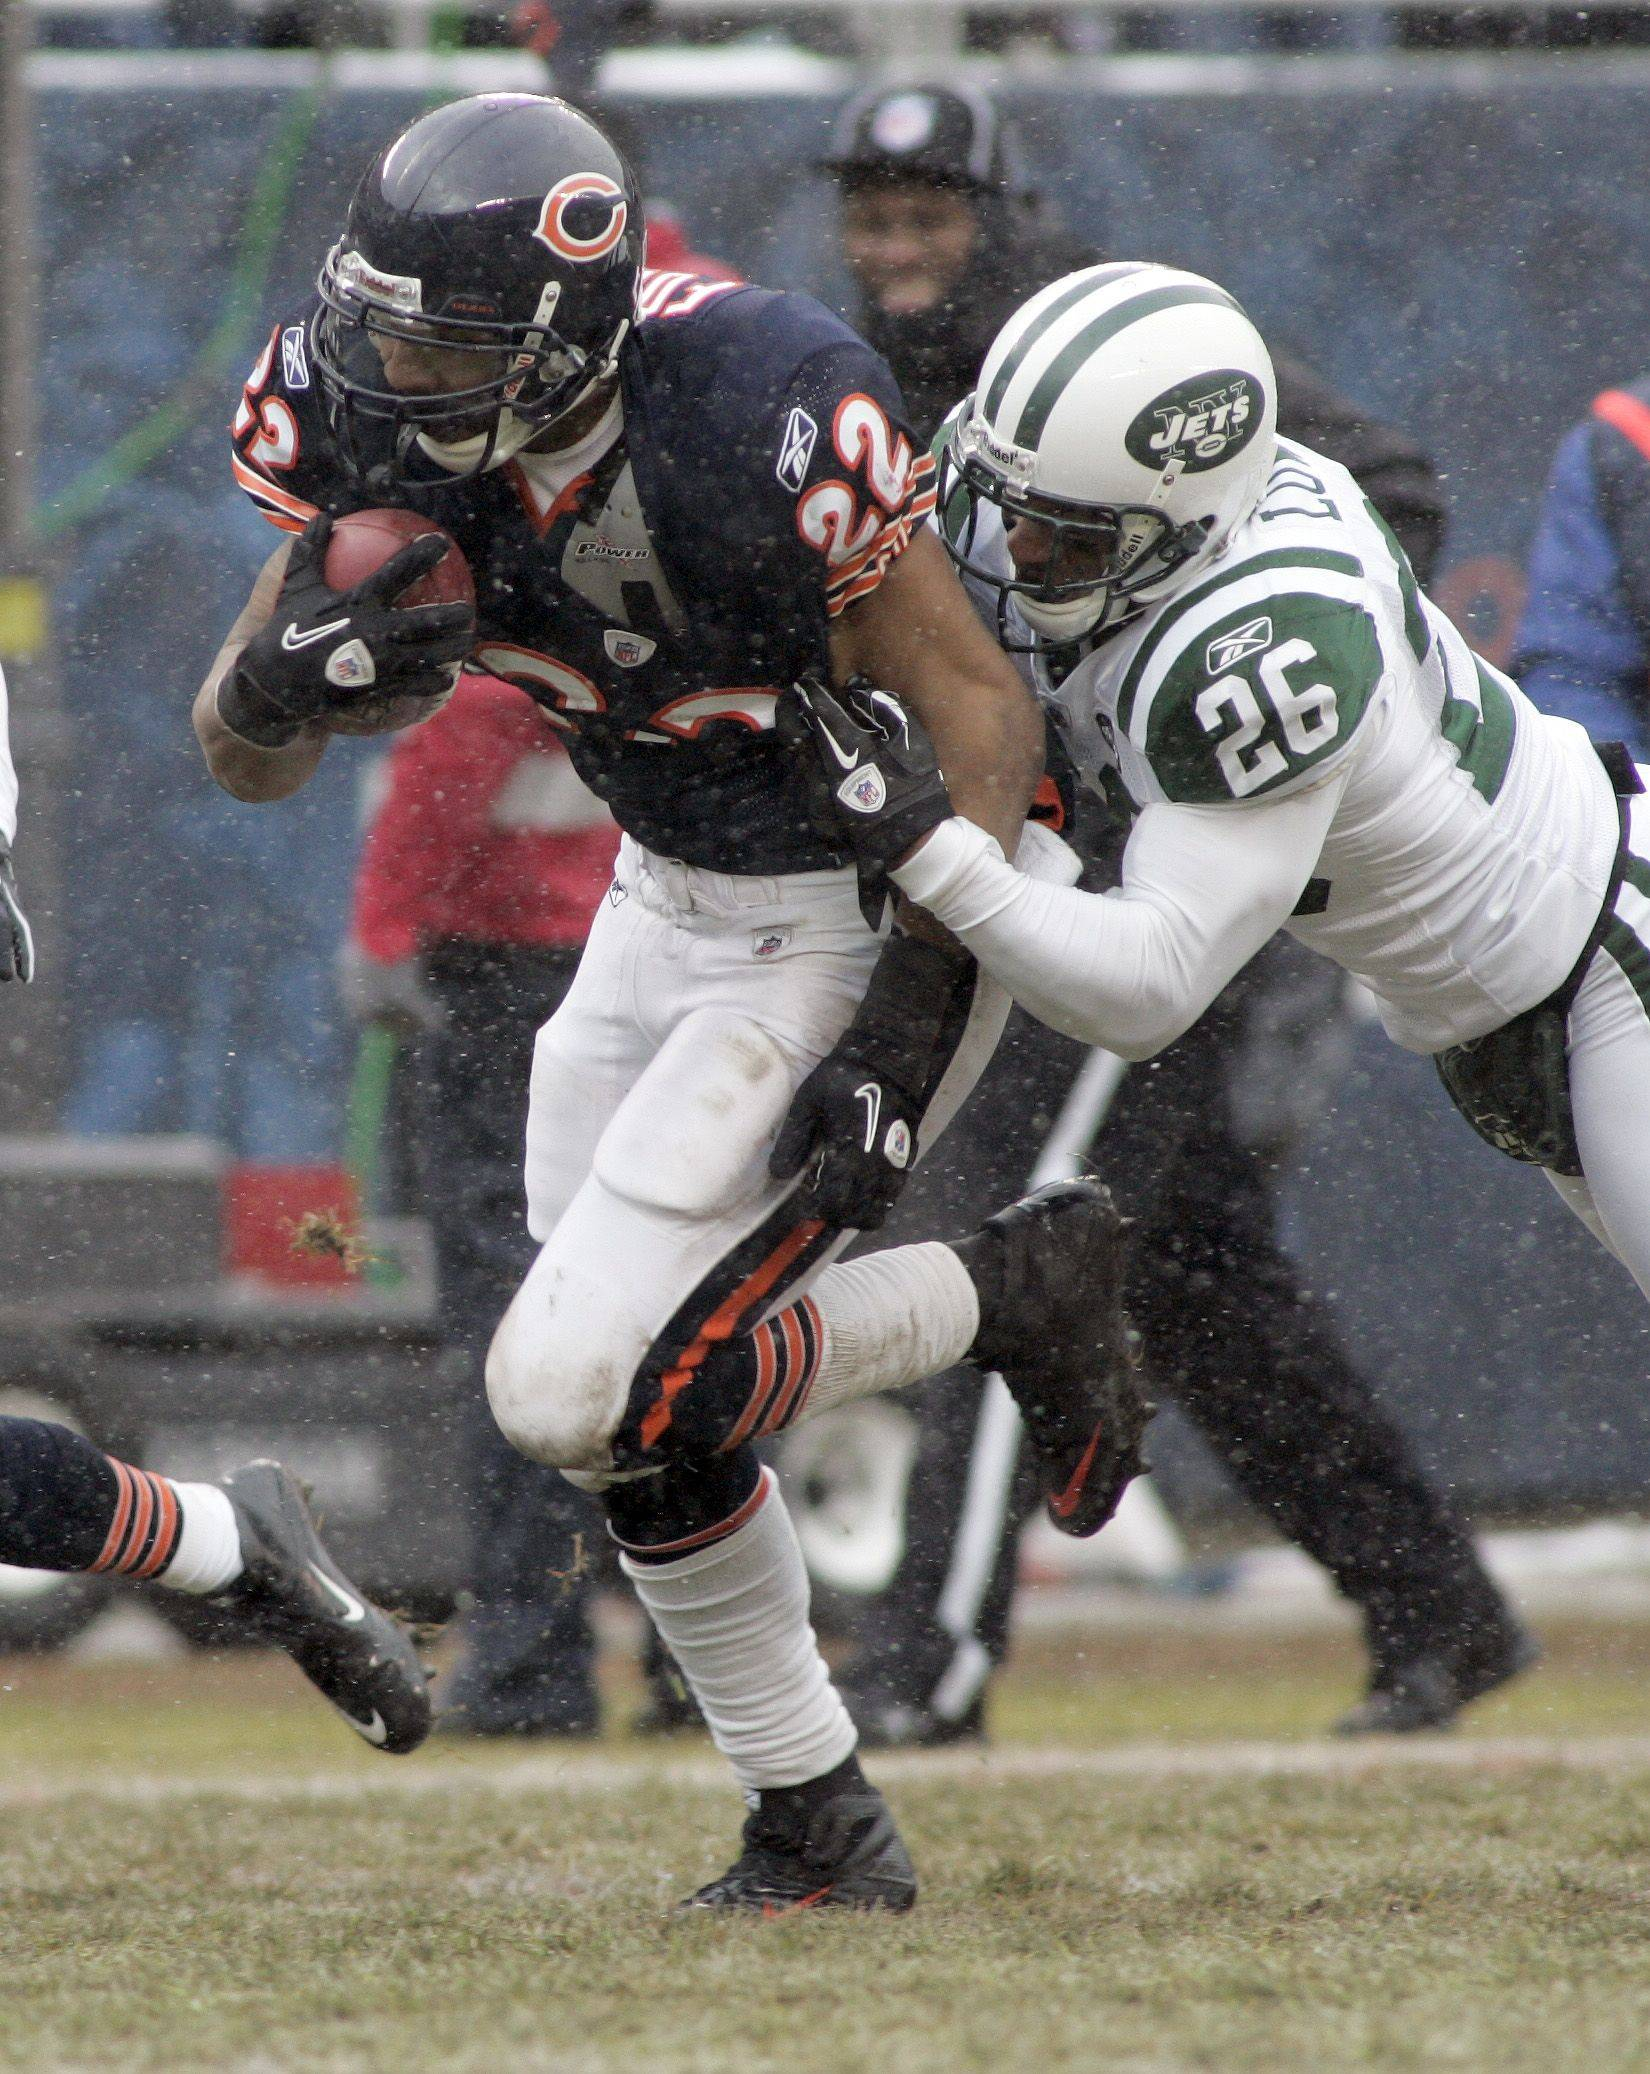 Forte continues hot streak in win over Jets